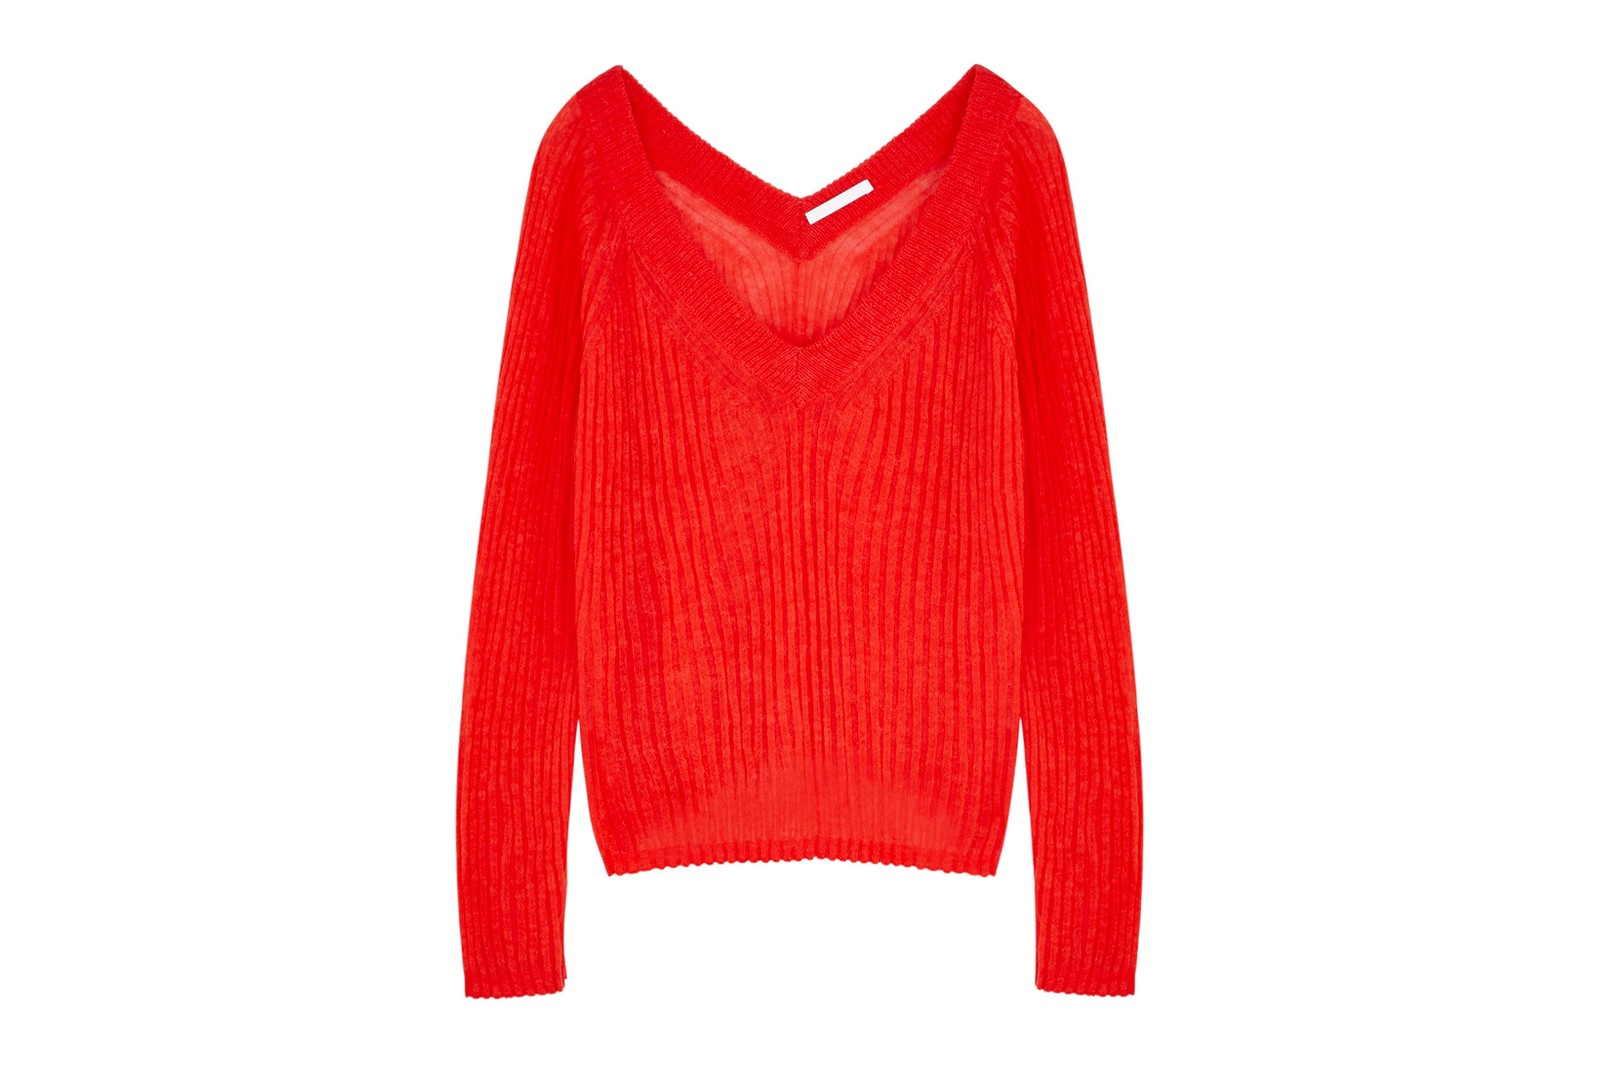 best knit sweaters lightweight fall jumper cardigan toteme nanushka jacquemus telfar turtleneck crewneck